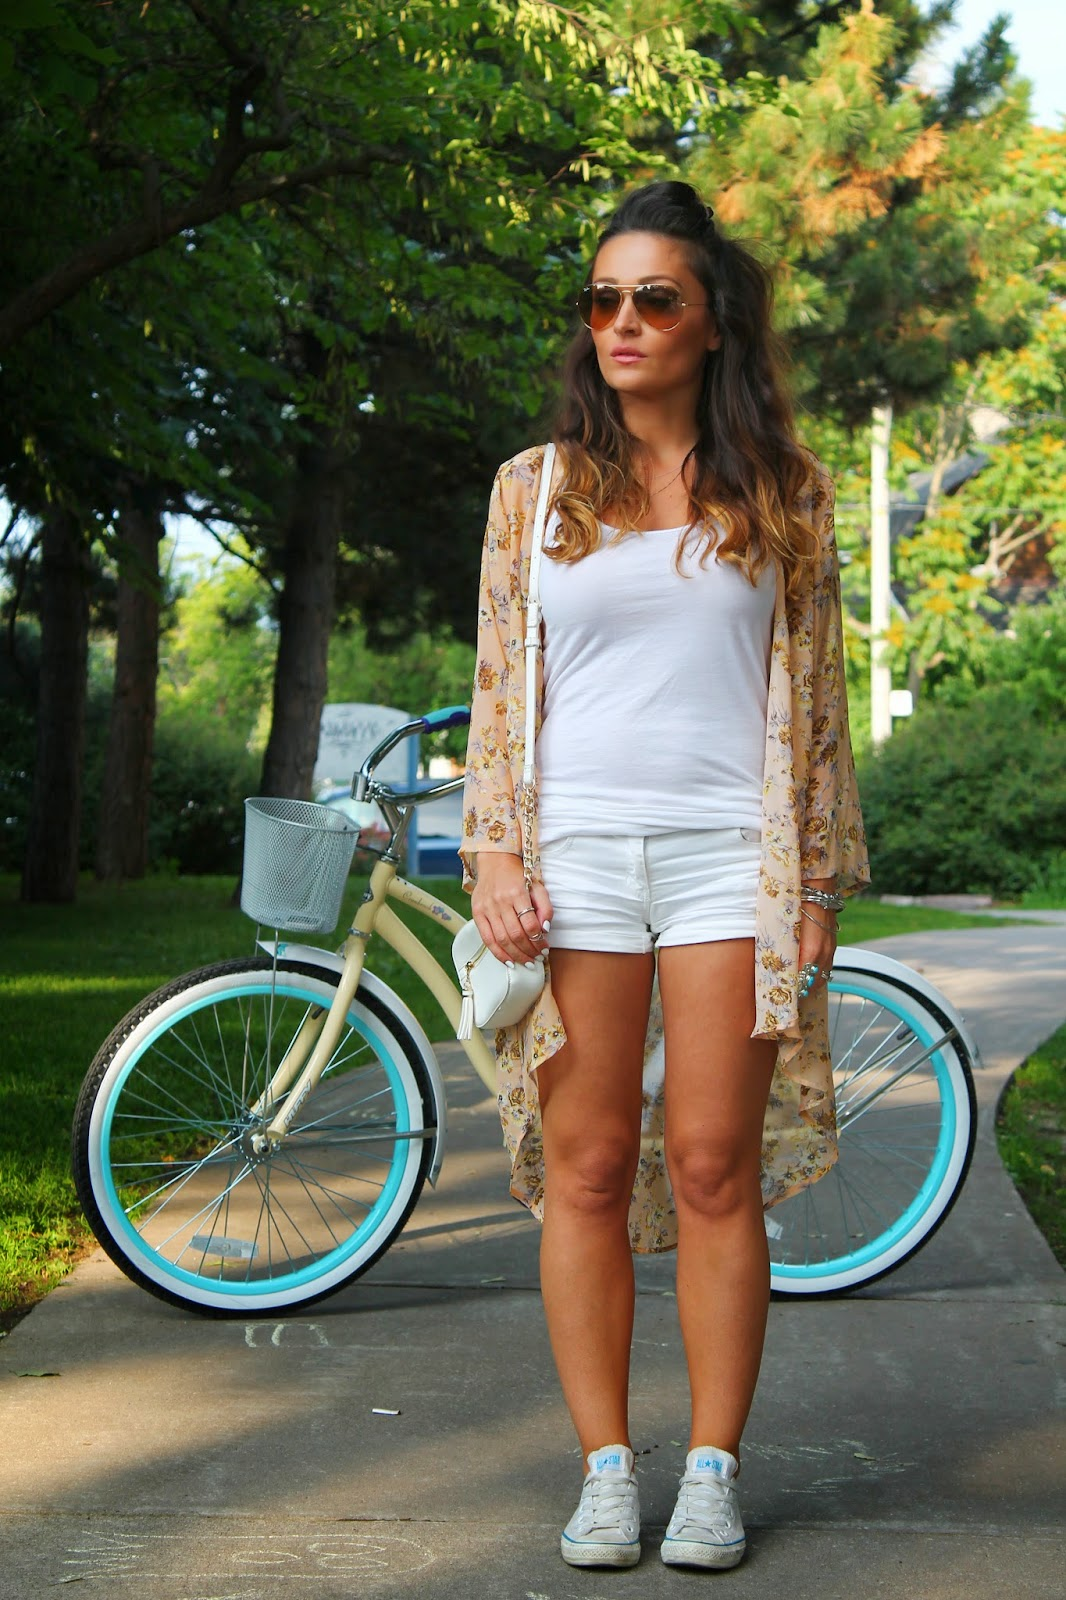 retro bicycle, retro bike, kimono, floral  kimono, how to style a kimono, white outfit for the summer, how to wear all white in the summer, how to wear floral print, how to wear shorts, Canadian fashion blogger, Toronto streets style, blogerke, how to wear converse, moda, outfit sa patikama, arm party, statement rings